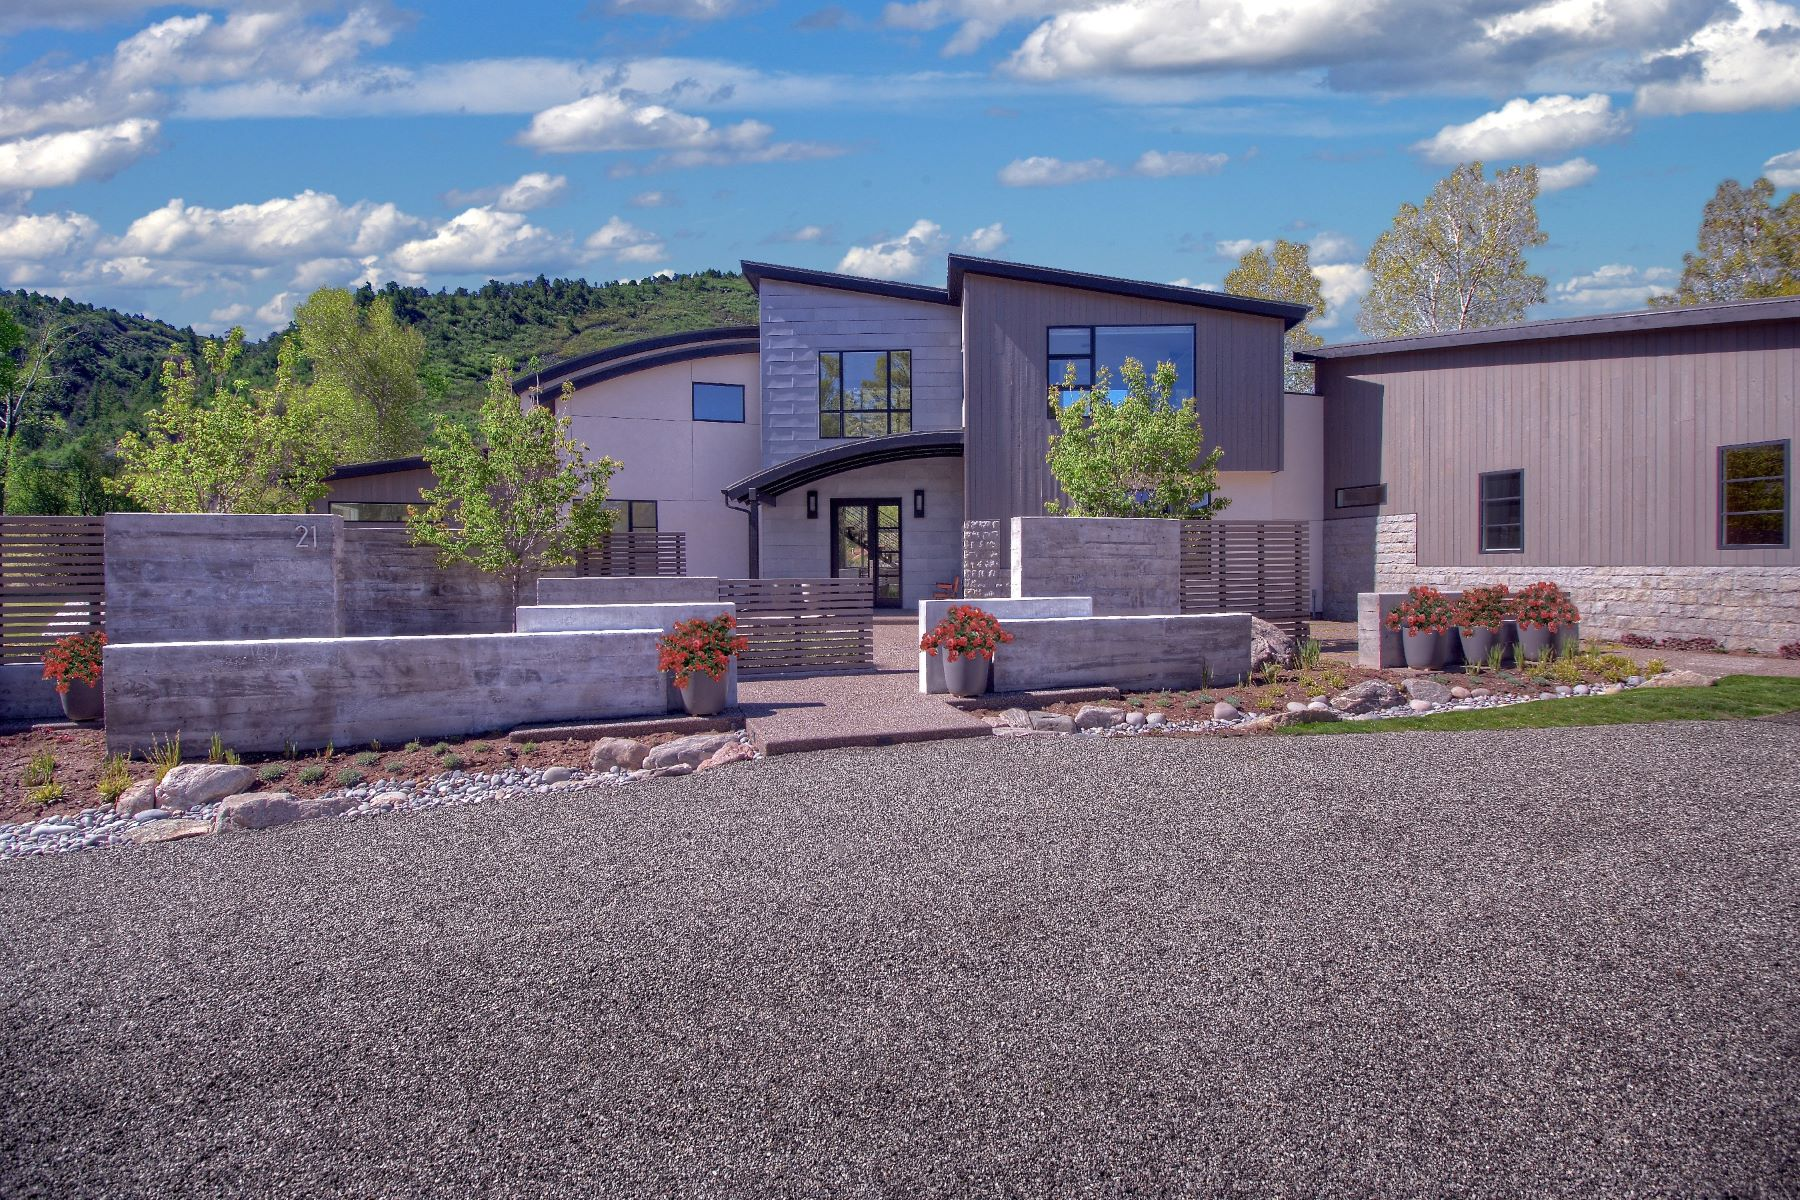 Casa Unifamiliar por un Venta en Contemporary Riverfront Gem 21 St Finnbar Farm Road Carbondale, Colorado 81623 Estados Unidos